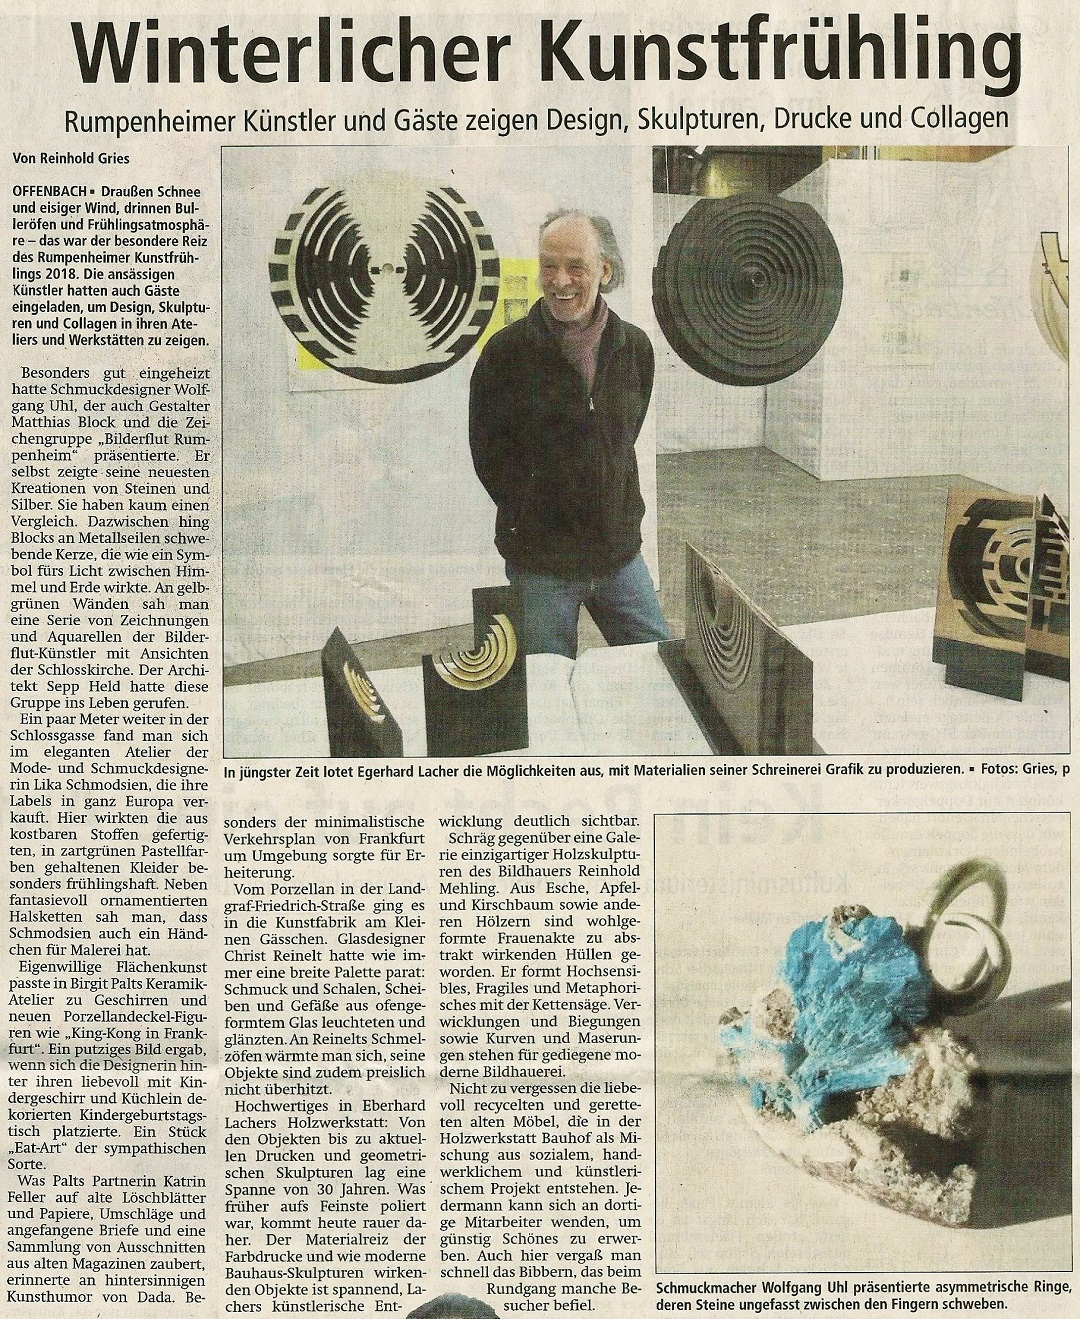 Made in rumpenheim pressespiegel for Offenbach kunst